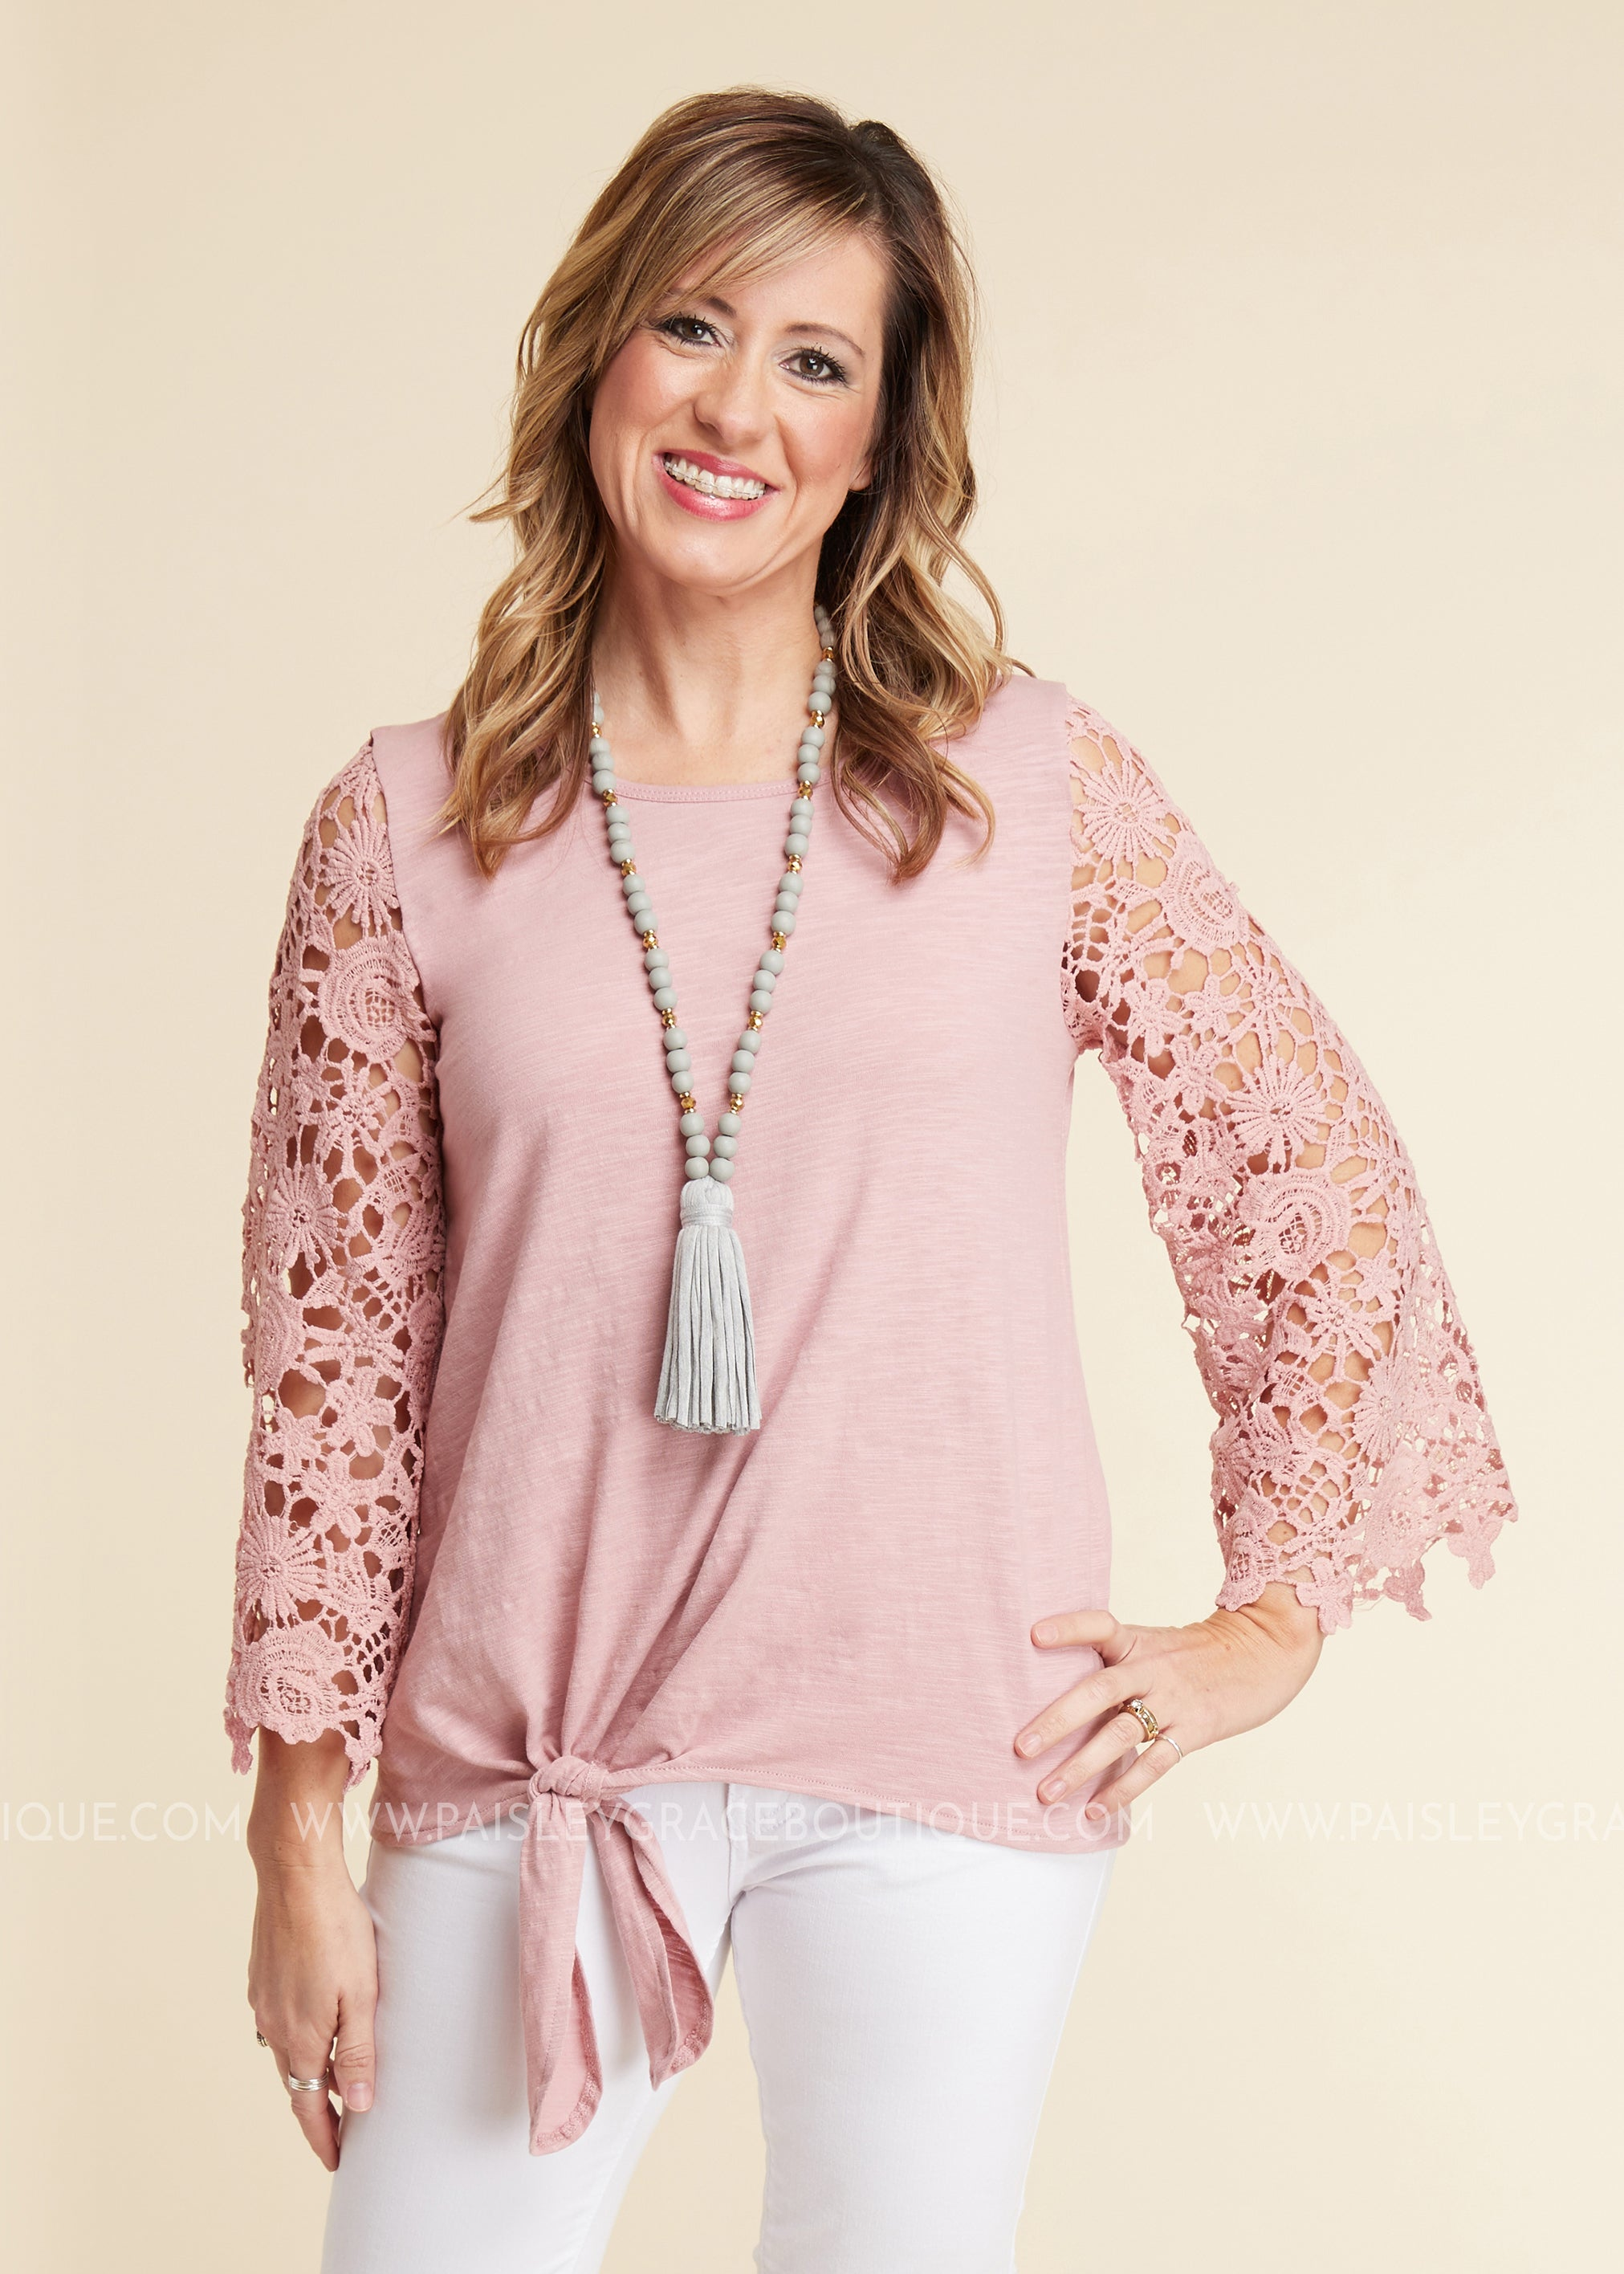 Lace Obsession Top - FINAL SALE